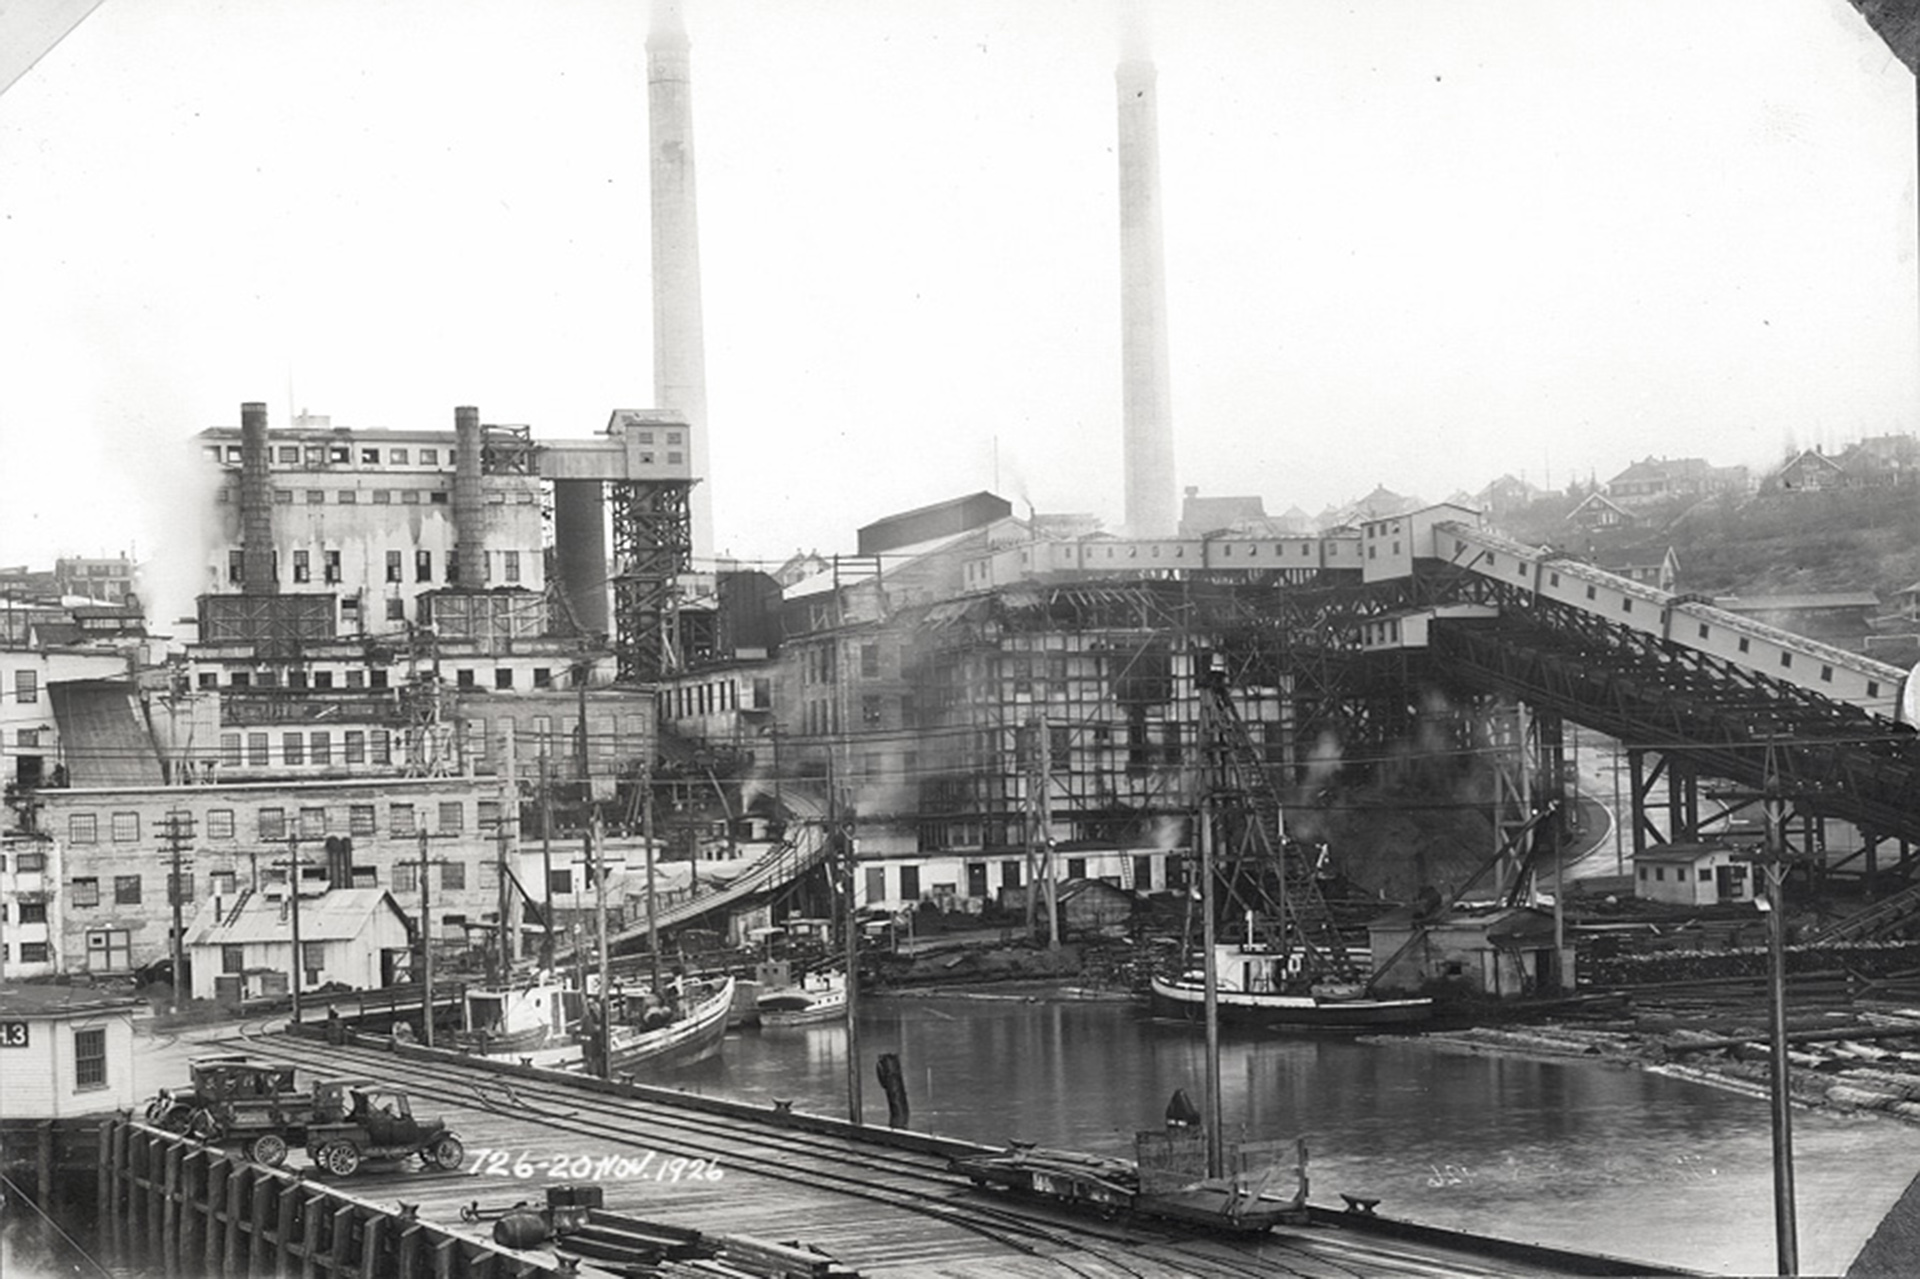 View of the Powell River Company Mill, 1926. Model T Ford wagons are parked on the wharf.